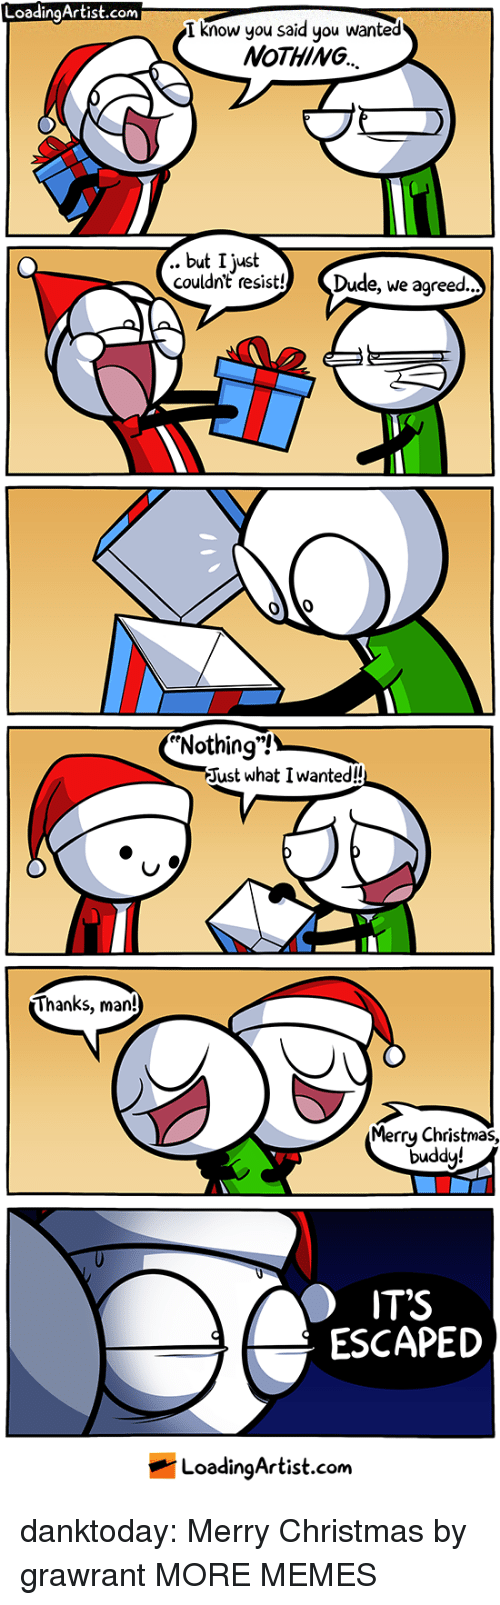 "Thanks Man: LoadingArtist.com  I know you said you wanted  NoTHING  .. but I just  couldn't resist! Dude, we agreed  Nothing""!  Just what I wanted!  Thanks, man!  Merrų Christmas,  duddy!  IT'S  ESCAPED  LoadingArtist.com danktoday:  Merry Christmas by grawrant MORE MEMES"